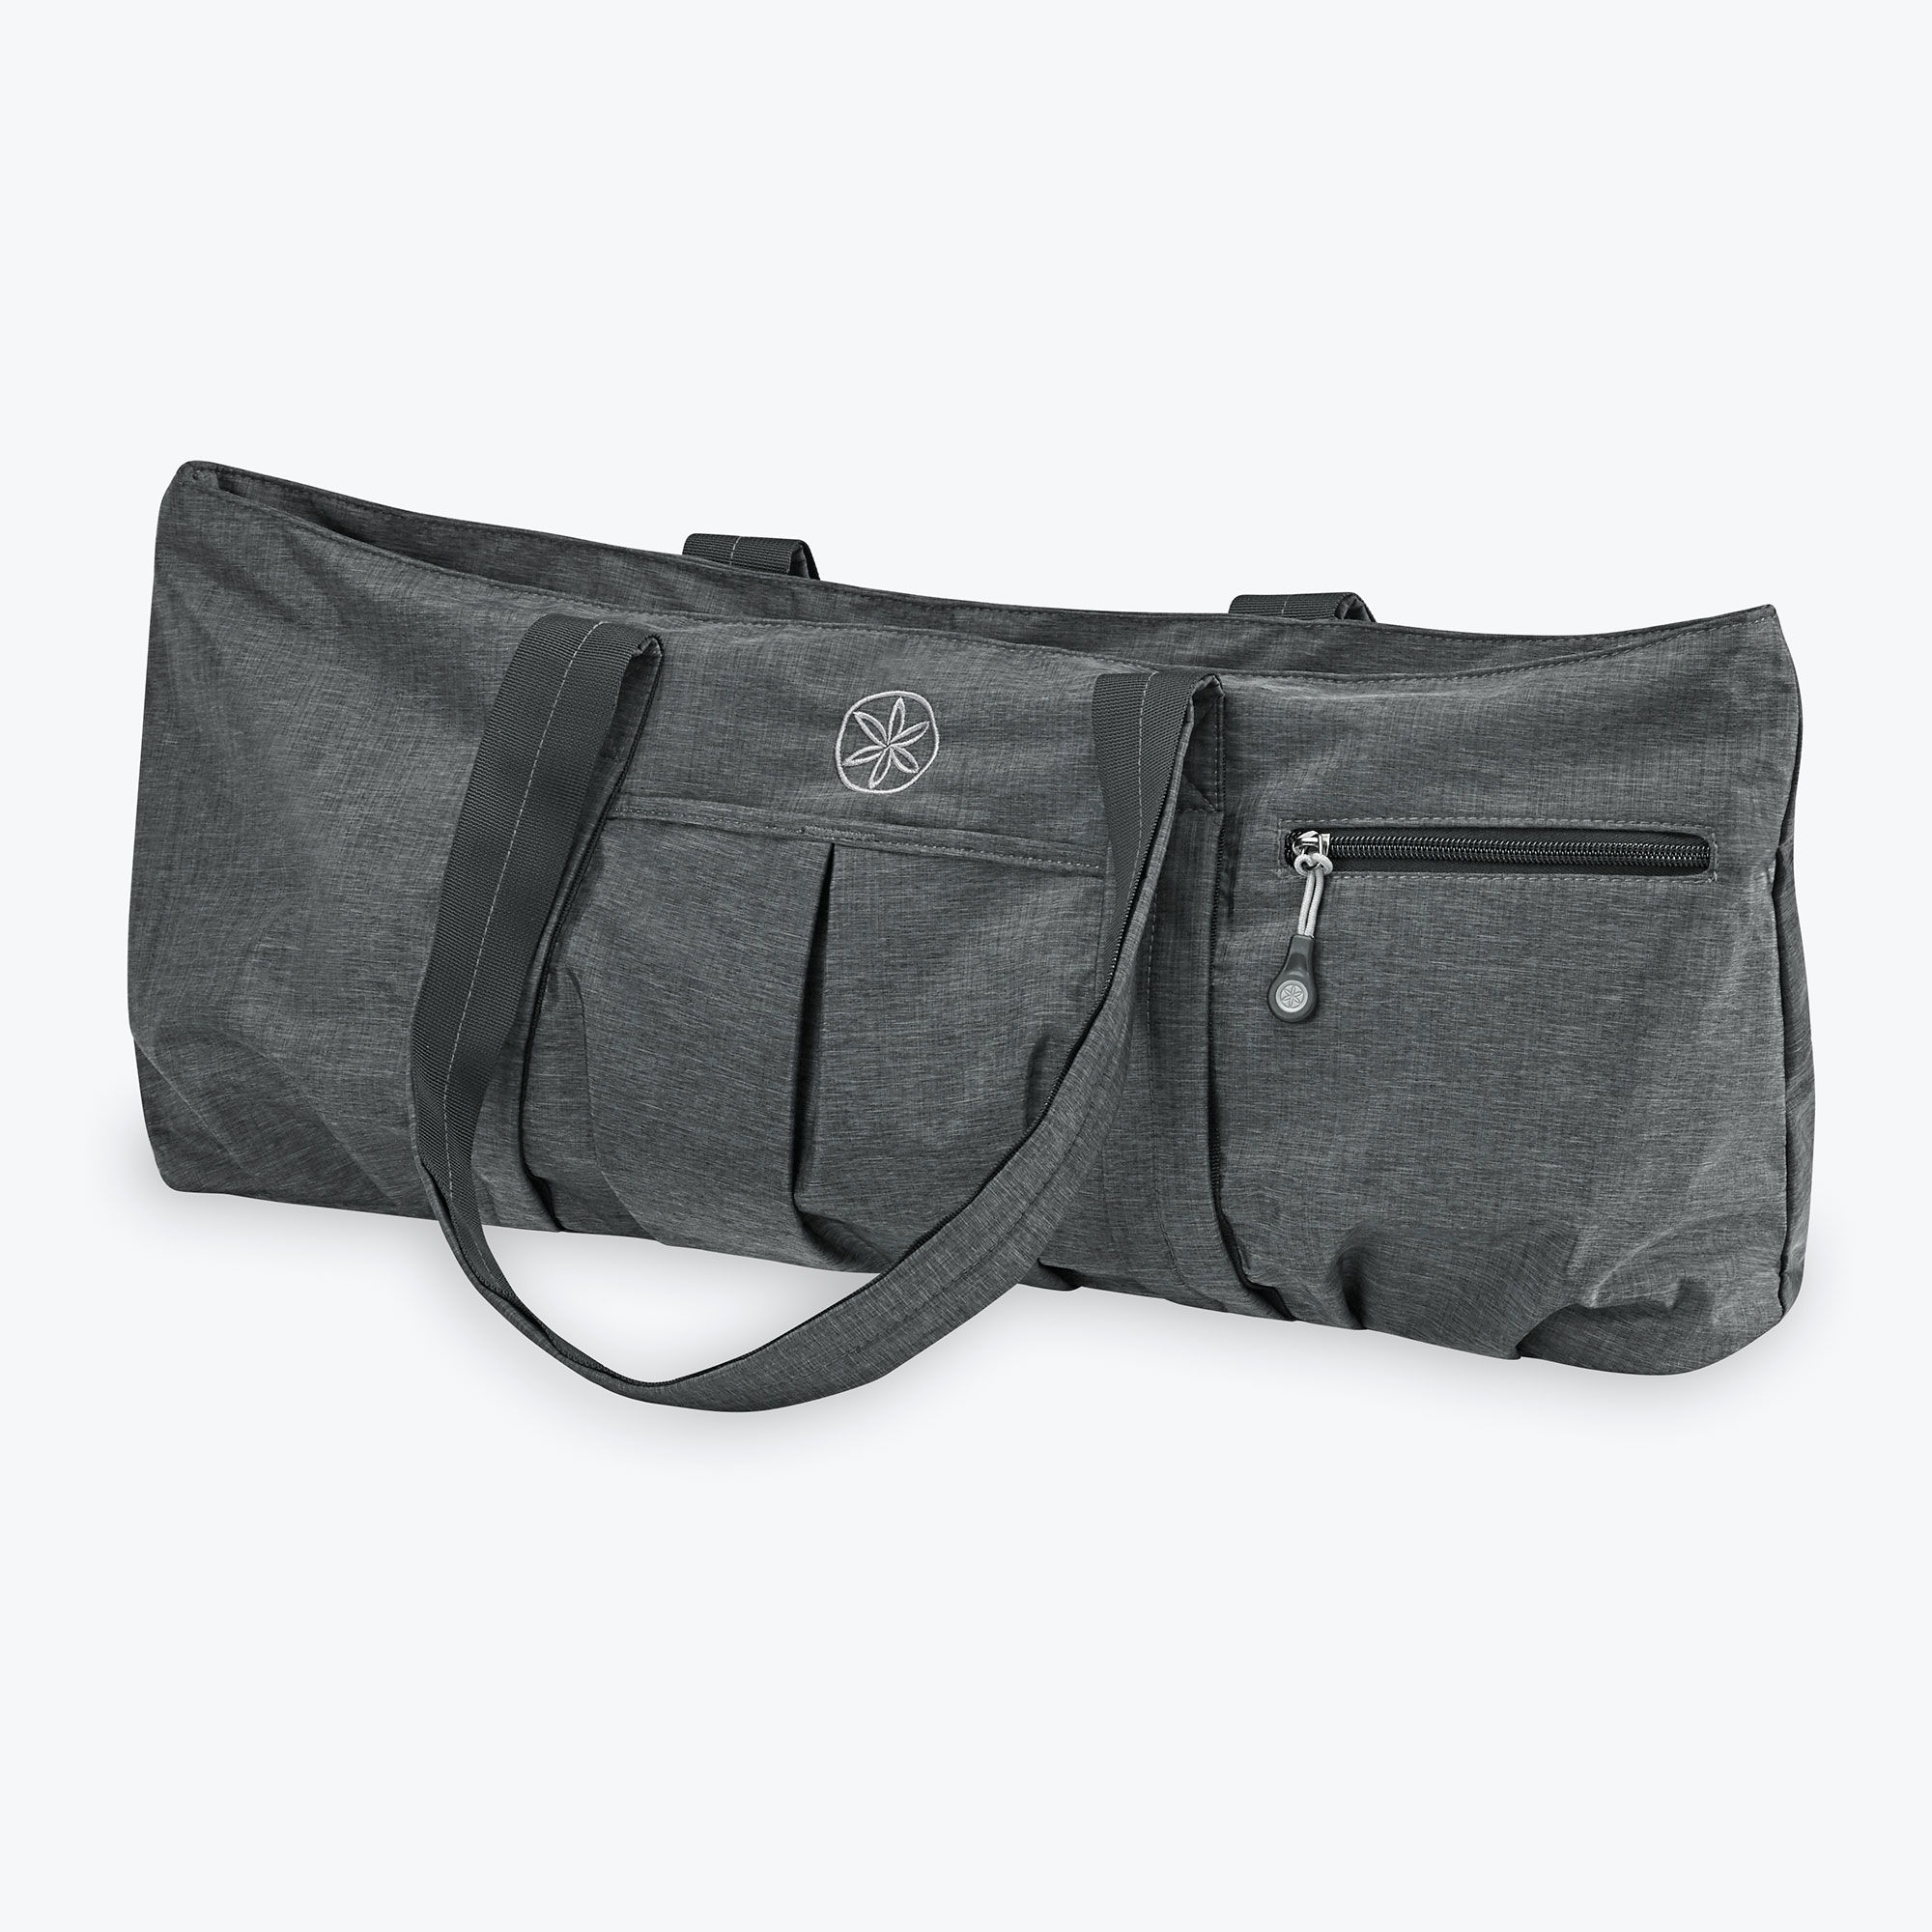 Shop Gaiam Yoga Mat Bags